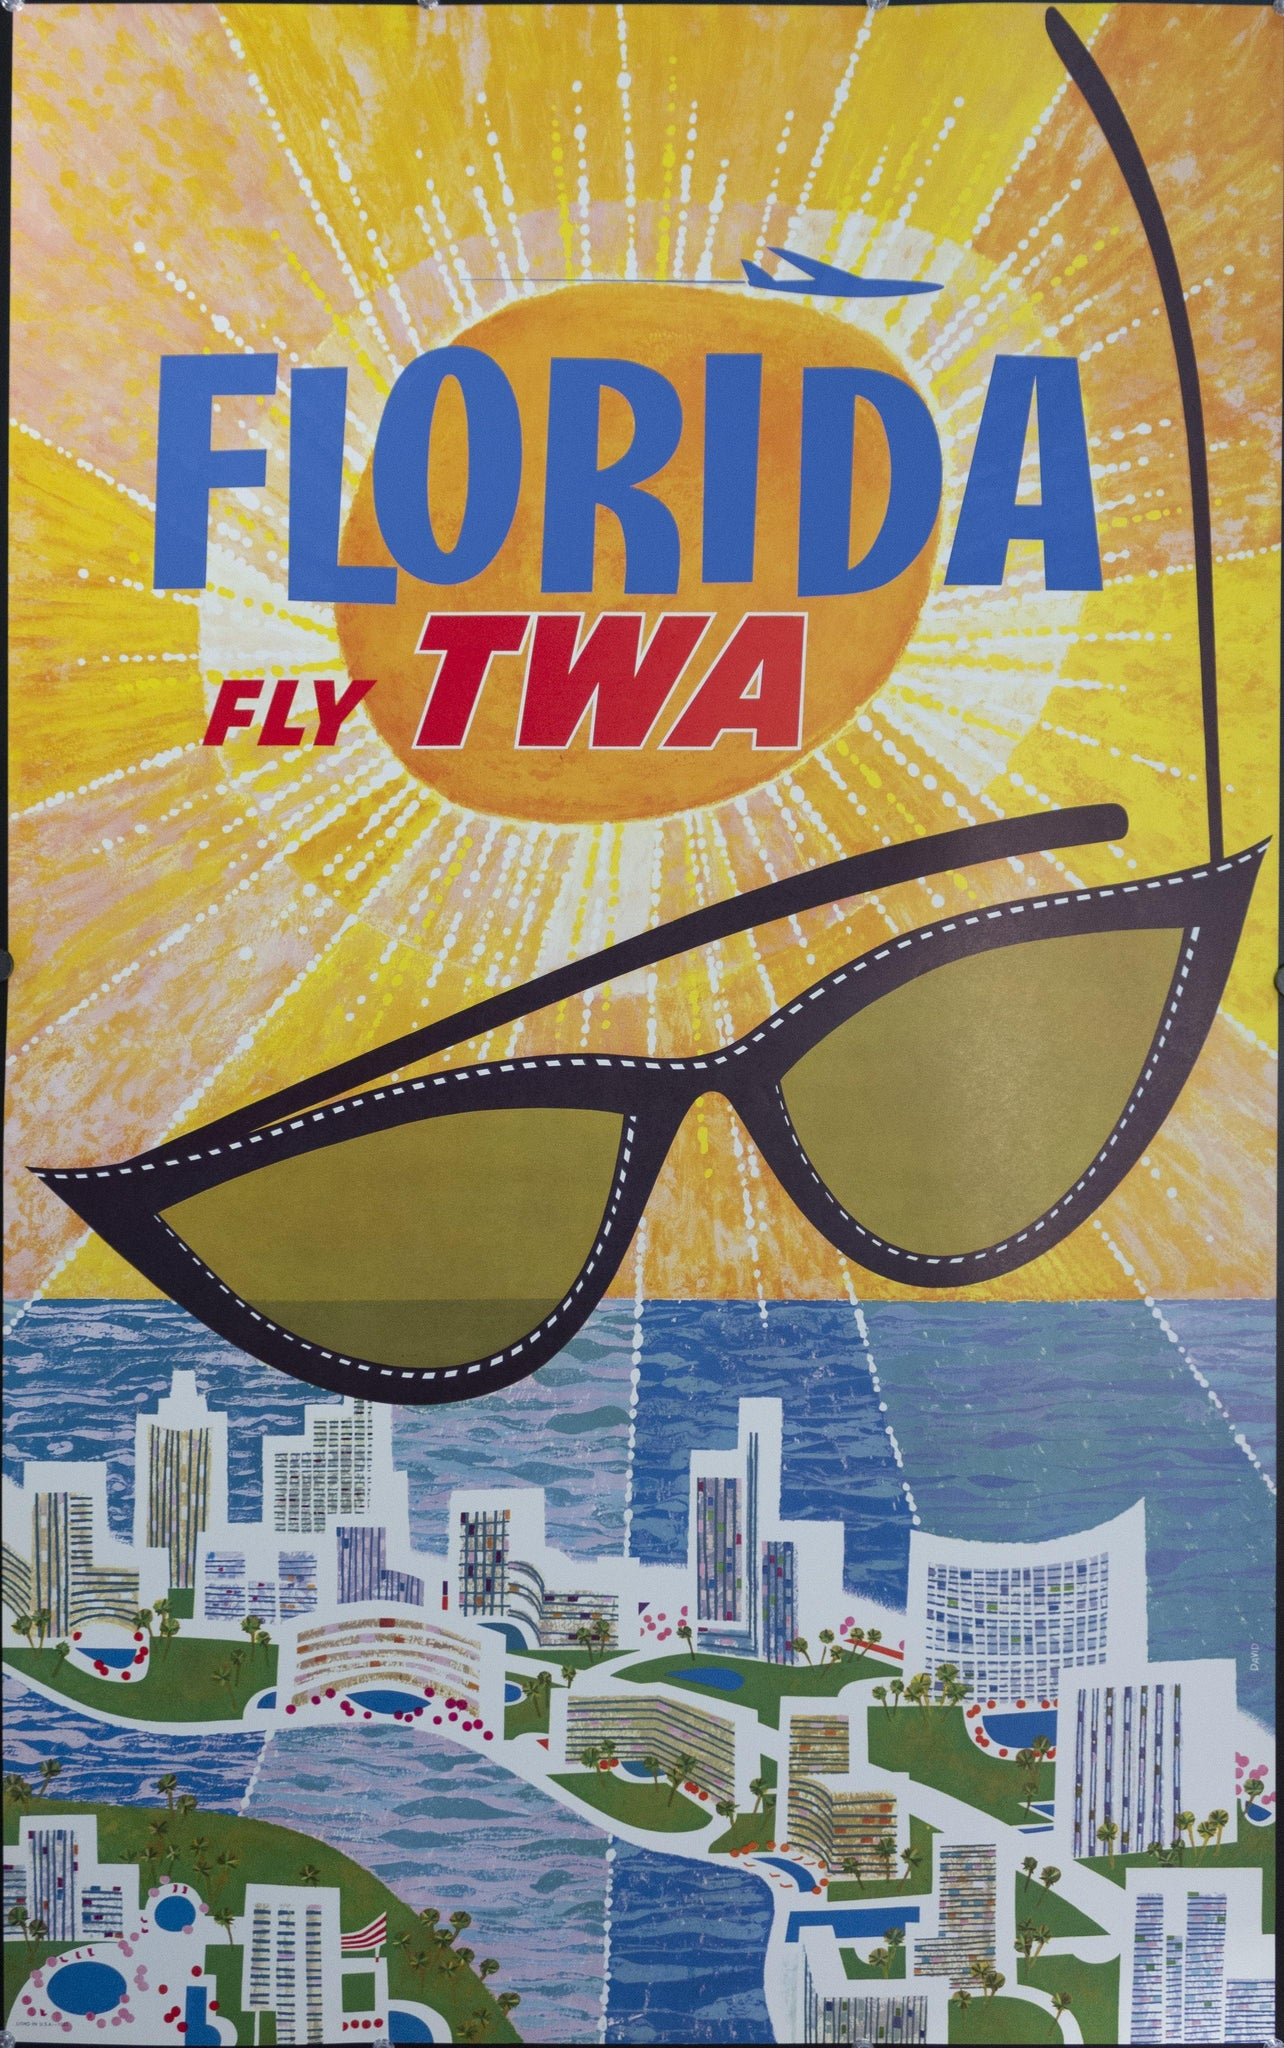 c. 1960s Florida Fly TWA by David Klein - Golden Age Posters